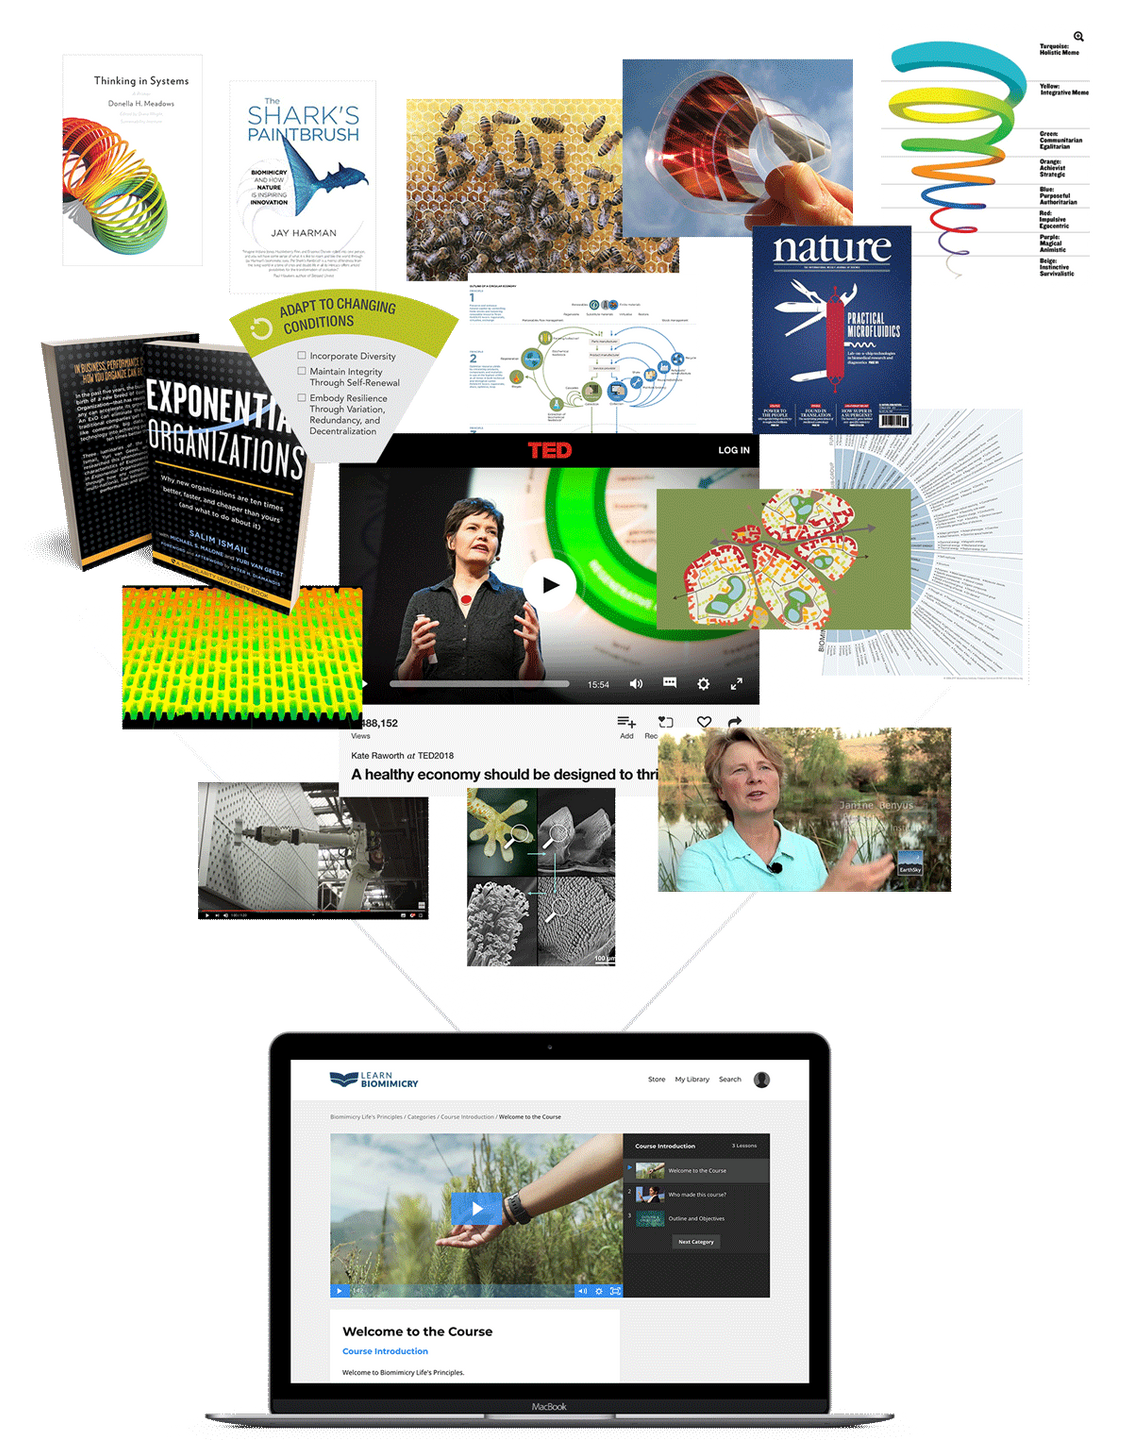 all biomimicry books and knowledge built into our courses